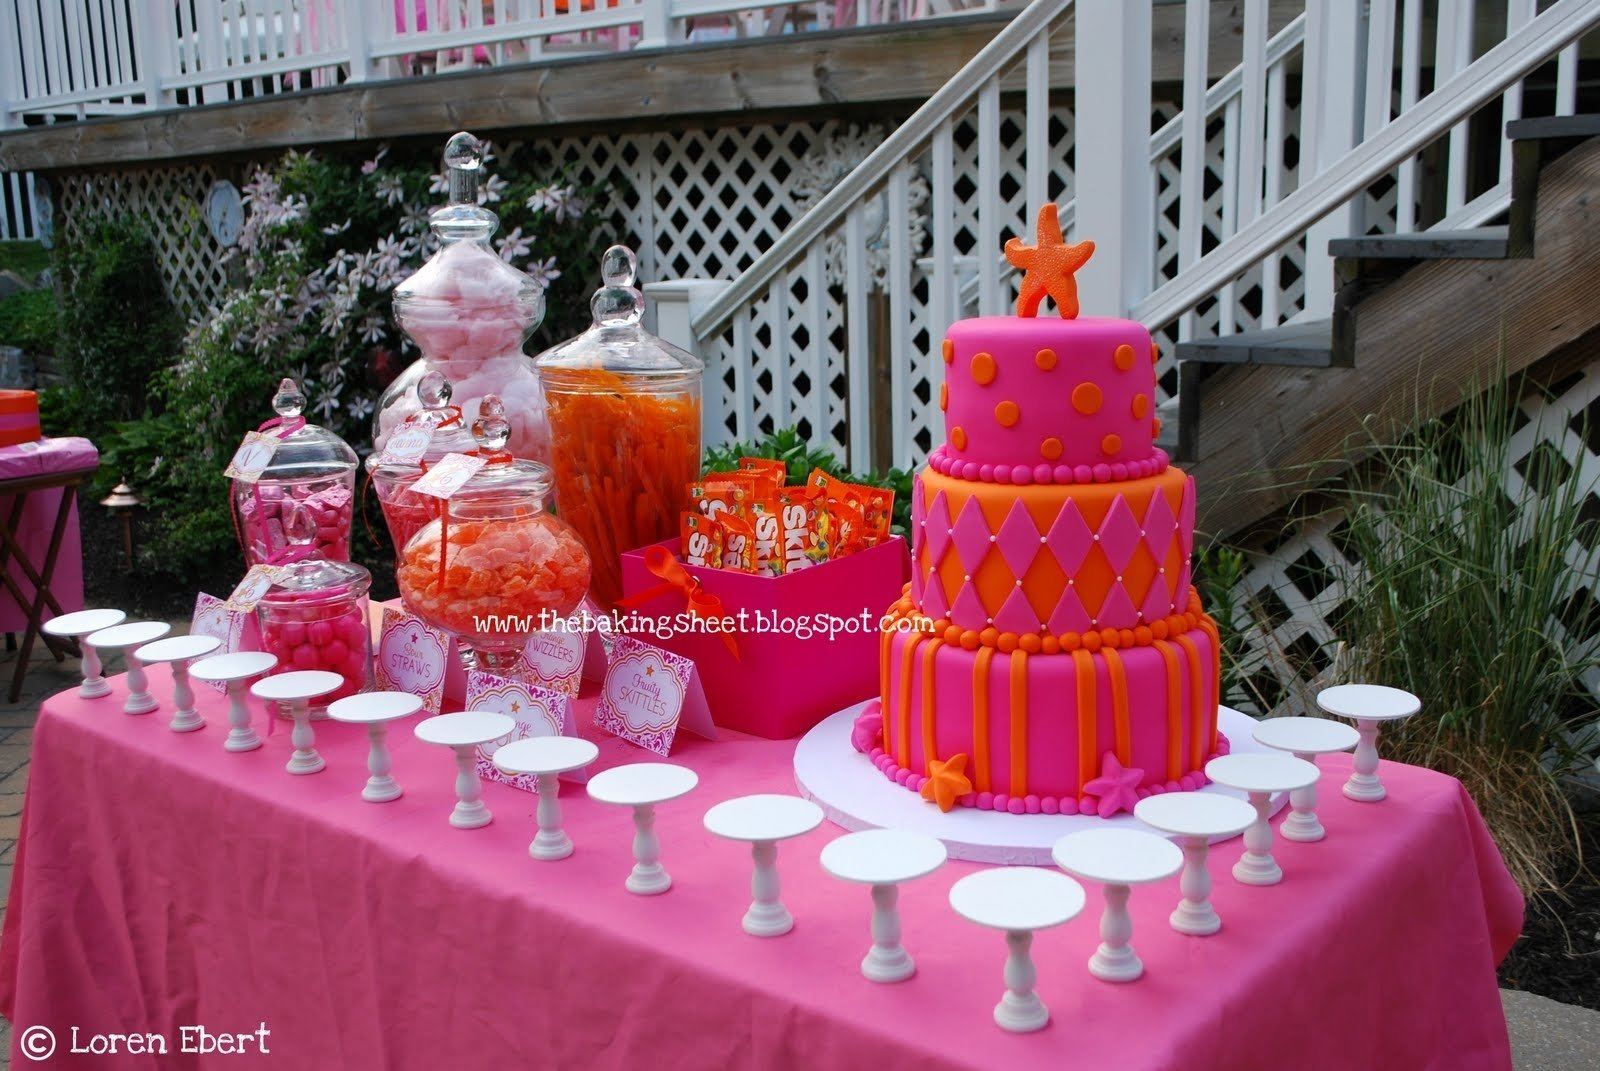 10 Perfect Ideas For 16Th Birthday Party 16th birthday party ideas for girls birthday party a awesome sweet 3 2020